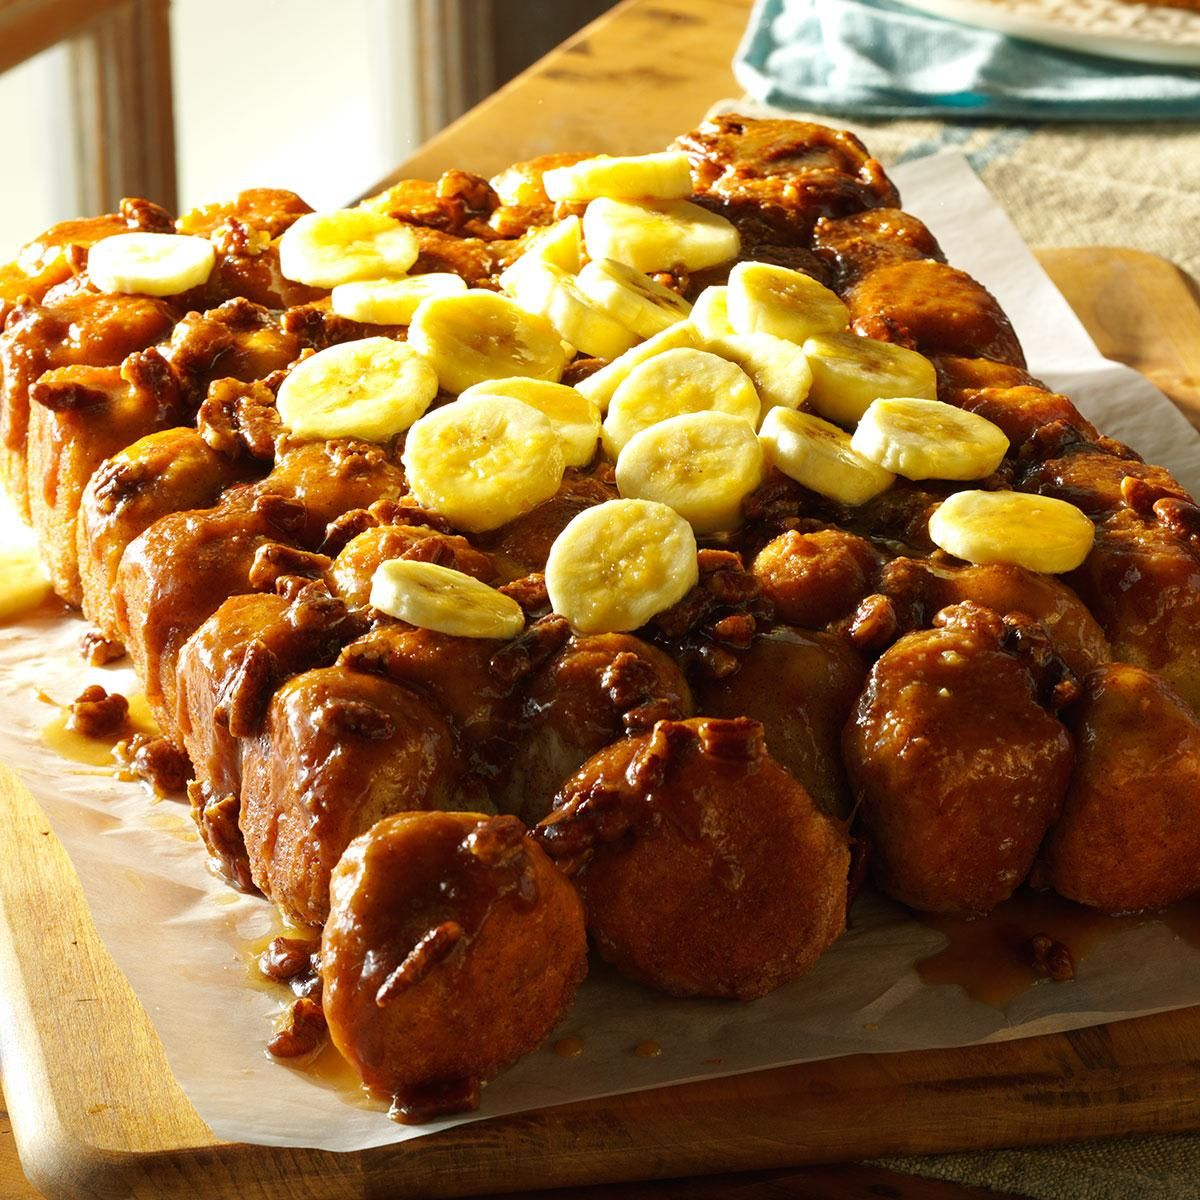 Upside-Down Banana Monkey Bread Recipe -Everyone digs in to monkey bread thanks to its pull-apart shape. We add bananas and pecans in this scrumptious showpiece for a brunch or family gathering. —Donna Marie Ryan, Topsfield, Massachusetts